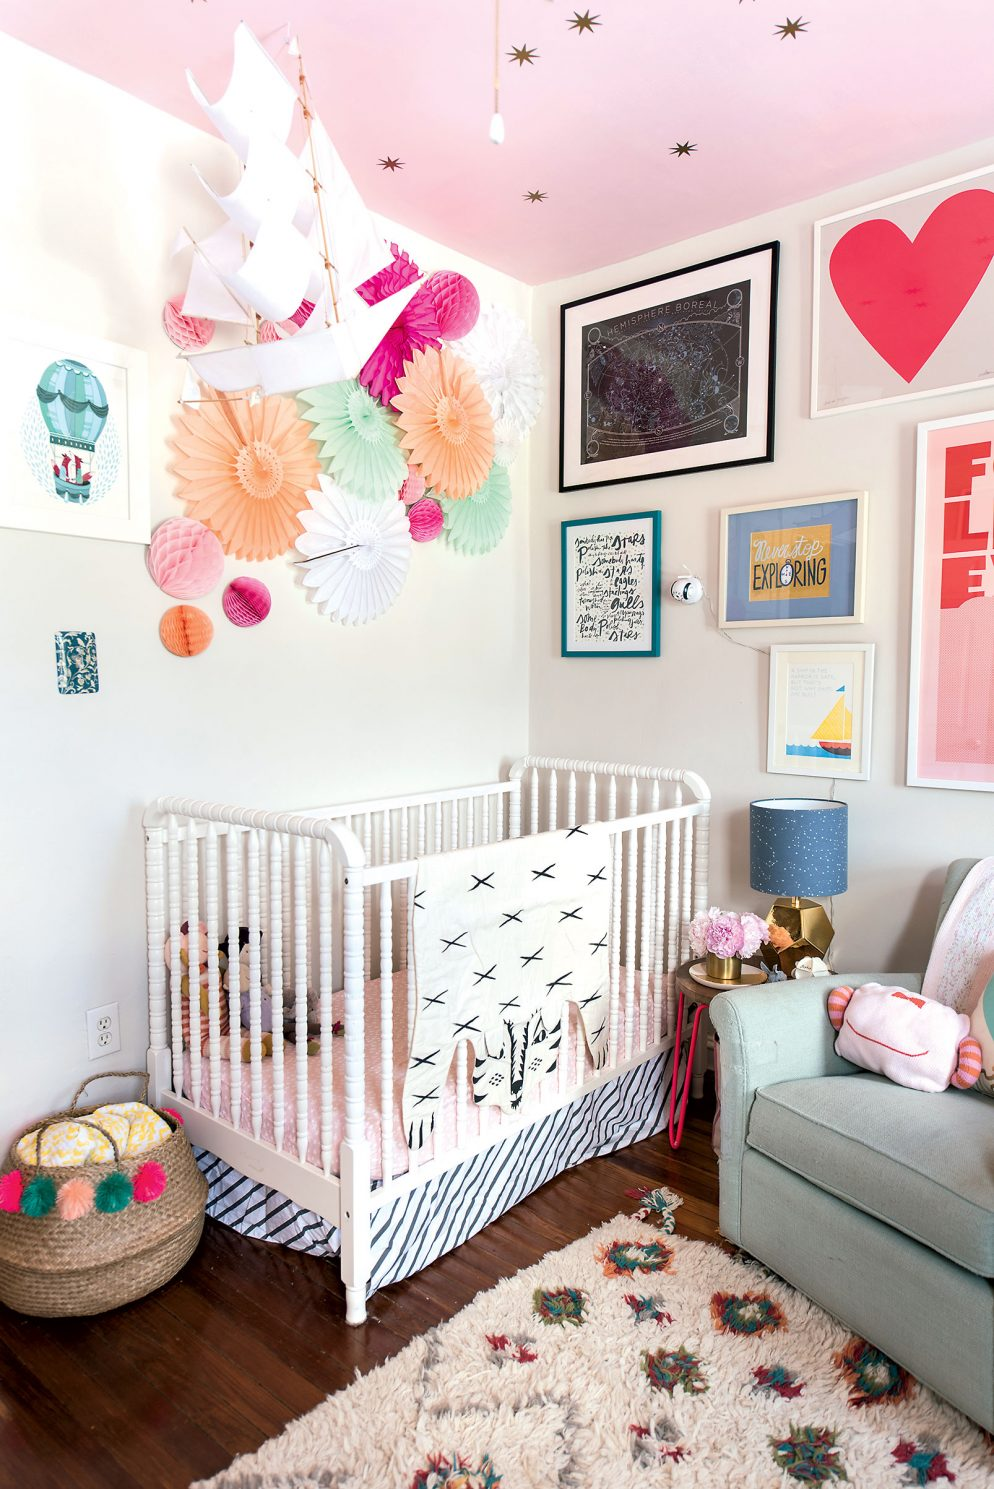 Your Splurge And Save Guide To Decorating Your Nursery